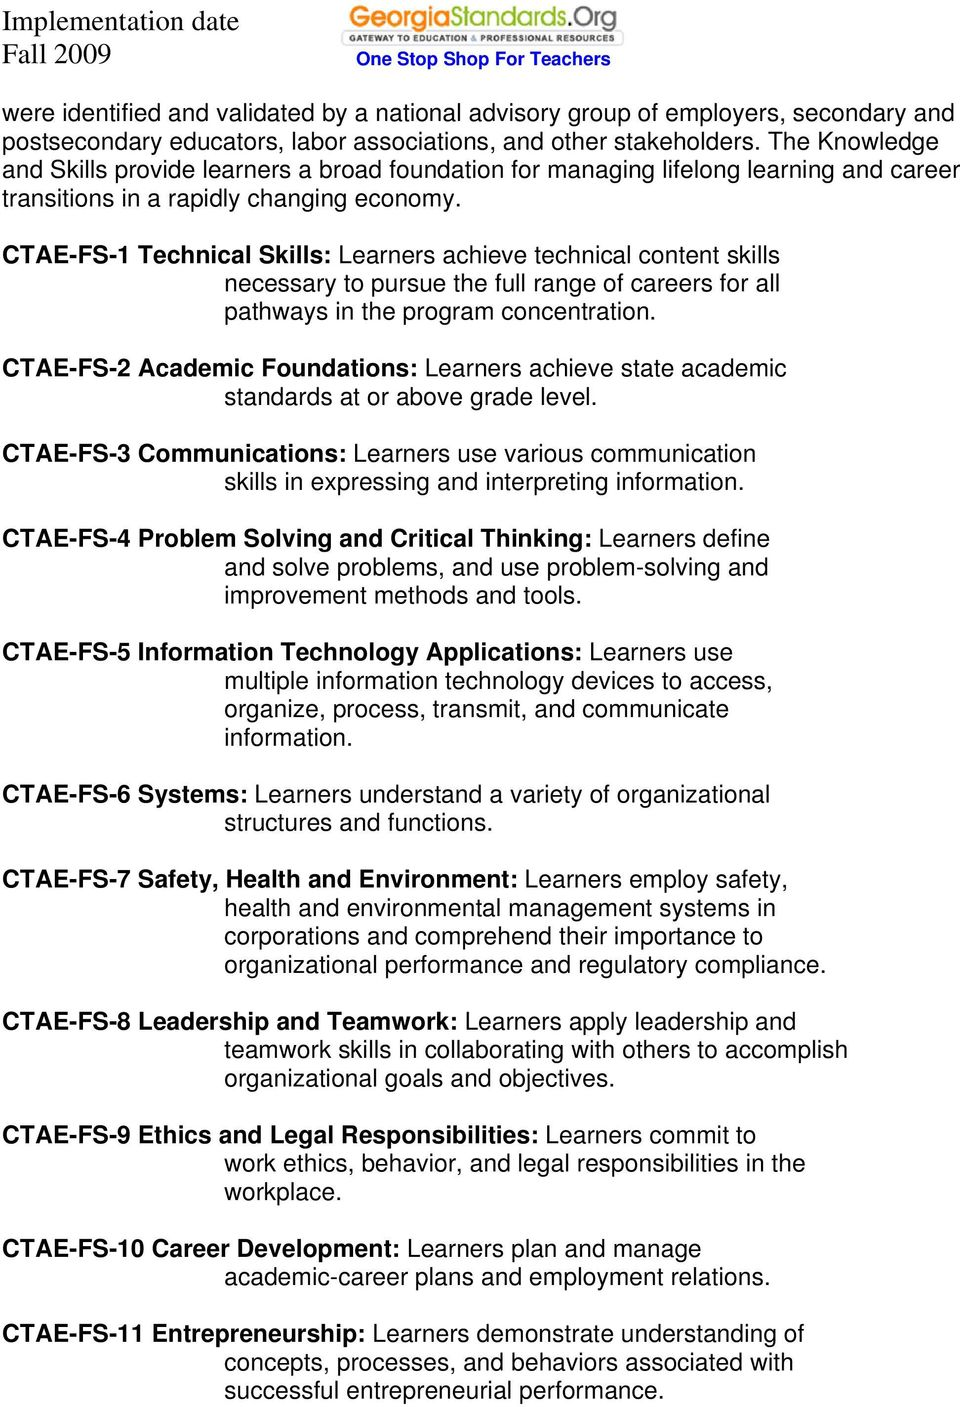 CTAE-FS-1 Technical Skills: Learners achieve technical content skills necessary to pursue the full range of careers for all pathways in the program concentration.